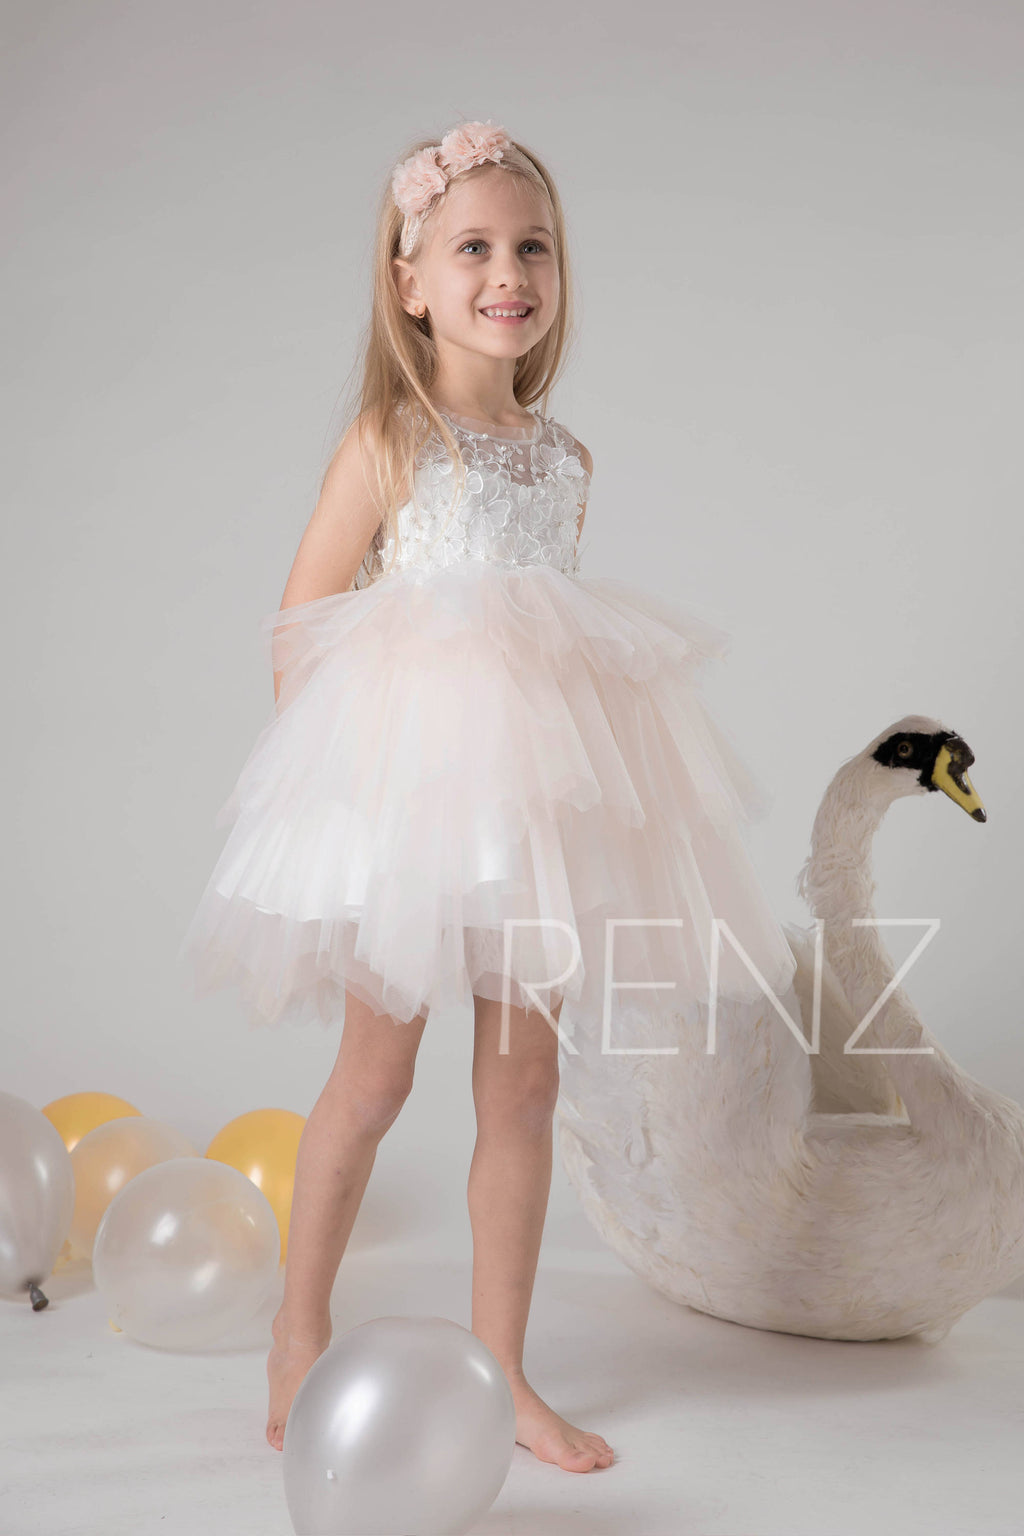 Off White Lace Flower Girl Dress Pale Peach Birthday Dress Illusion Baby Tutu Dress Beaded Girl Party Dress Junior Bridesmaid Dress(HK595)